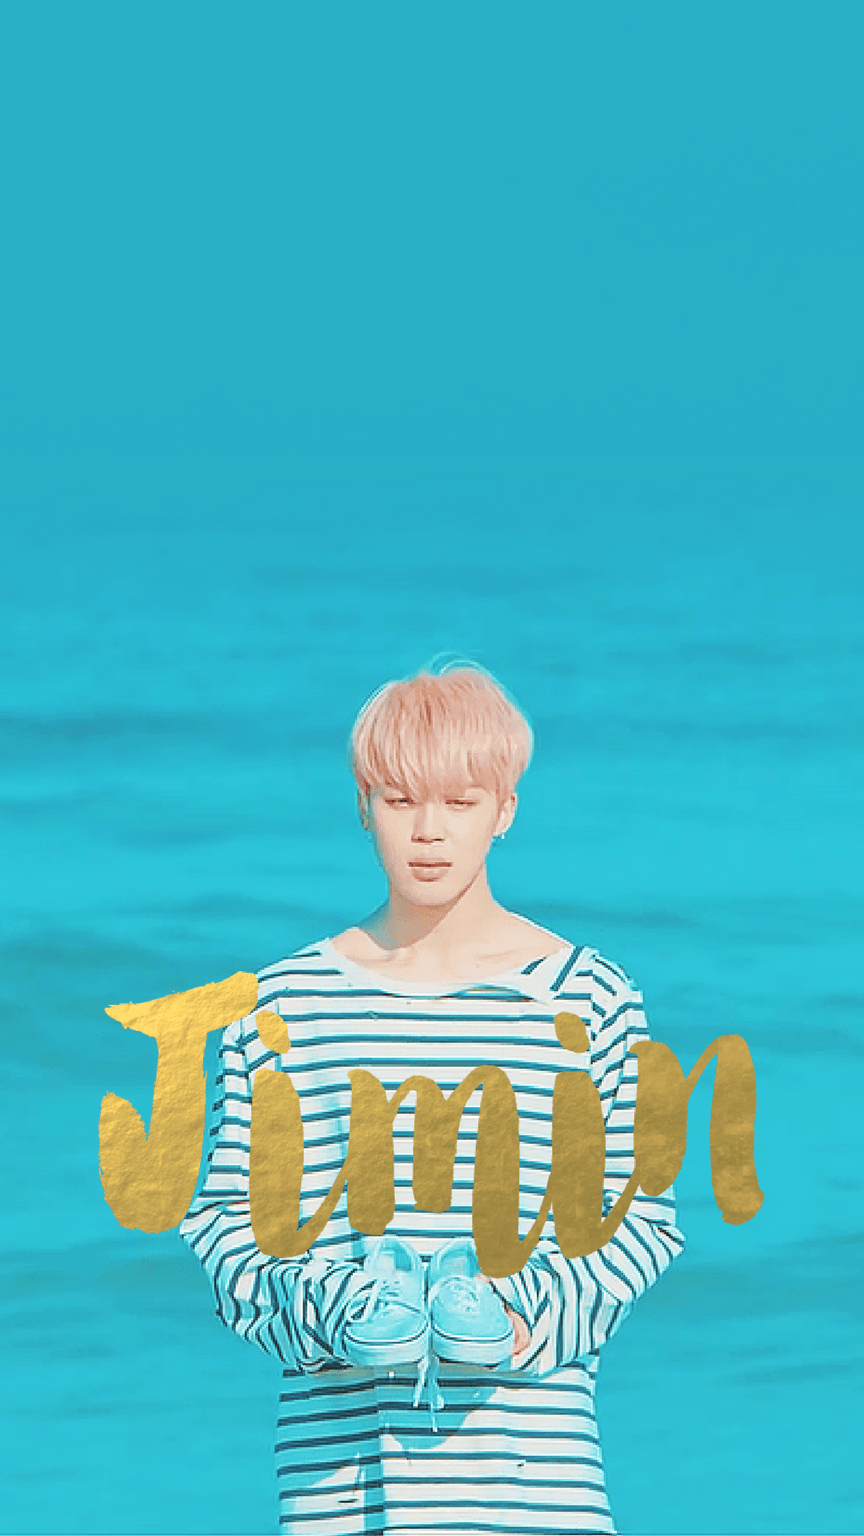 Jimin From BTS Wallpapers   Top Jimin From BTS Backgrounds 864x1536